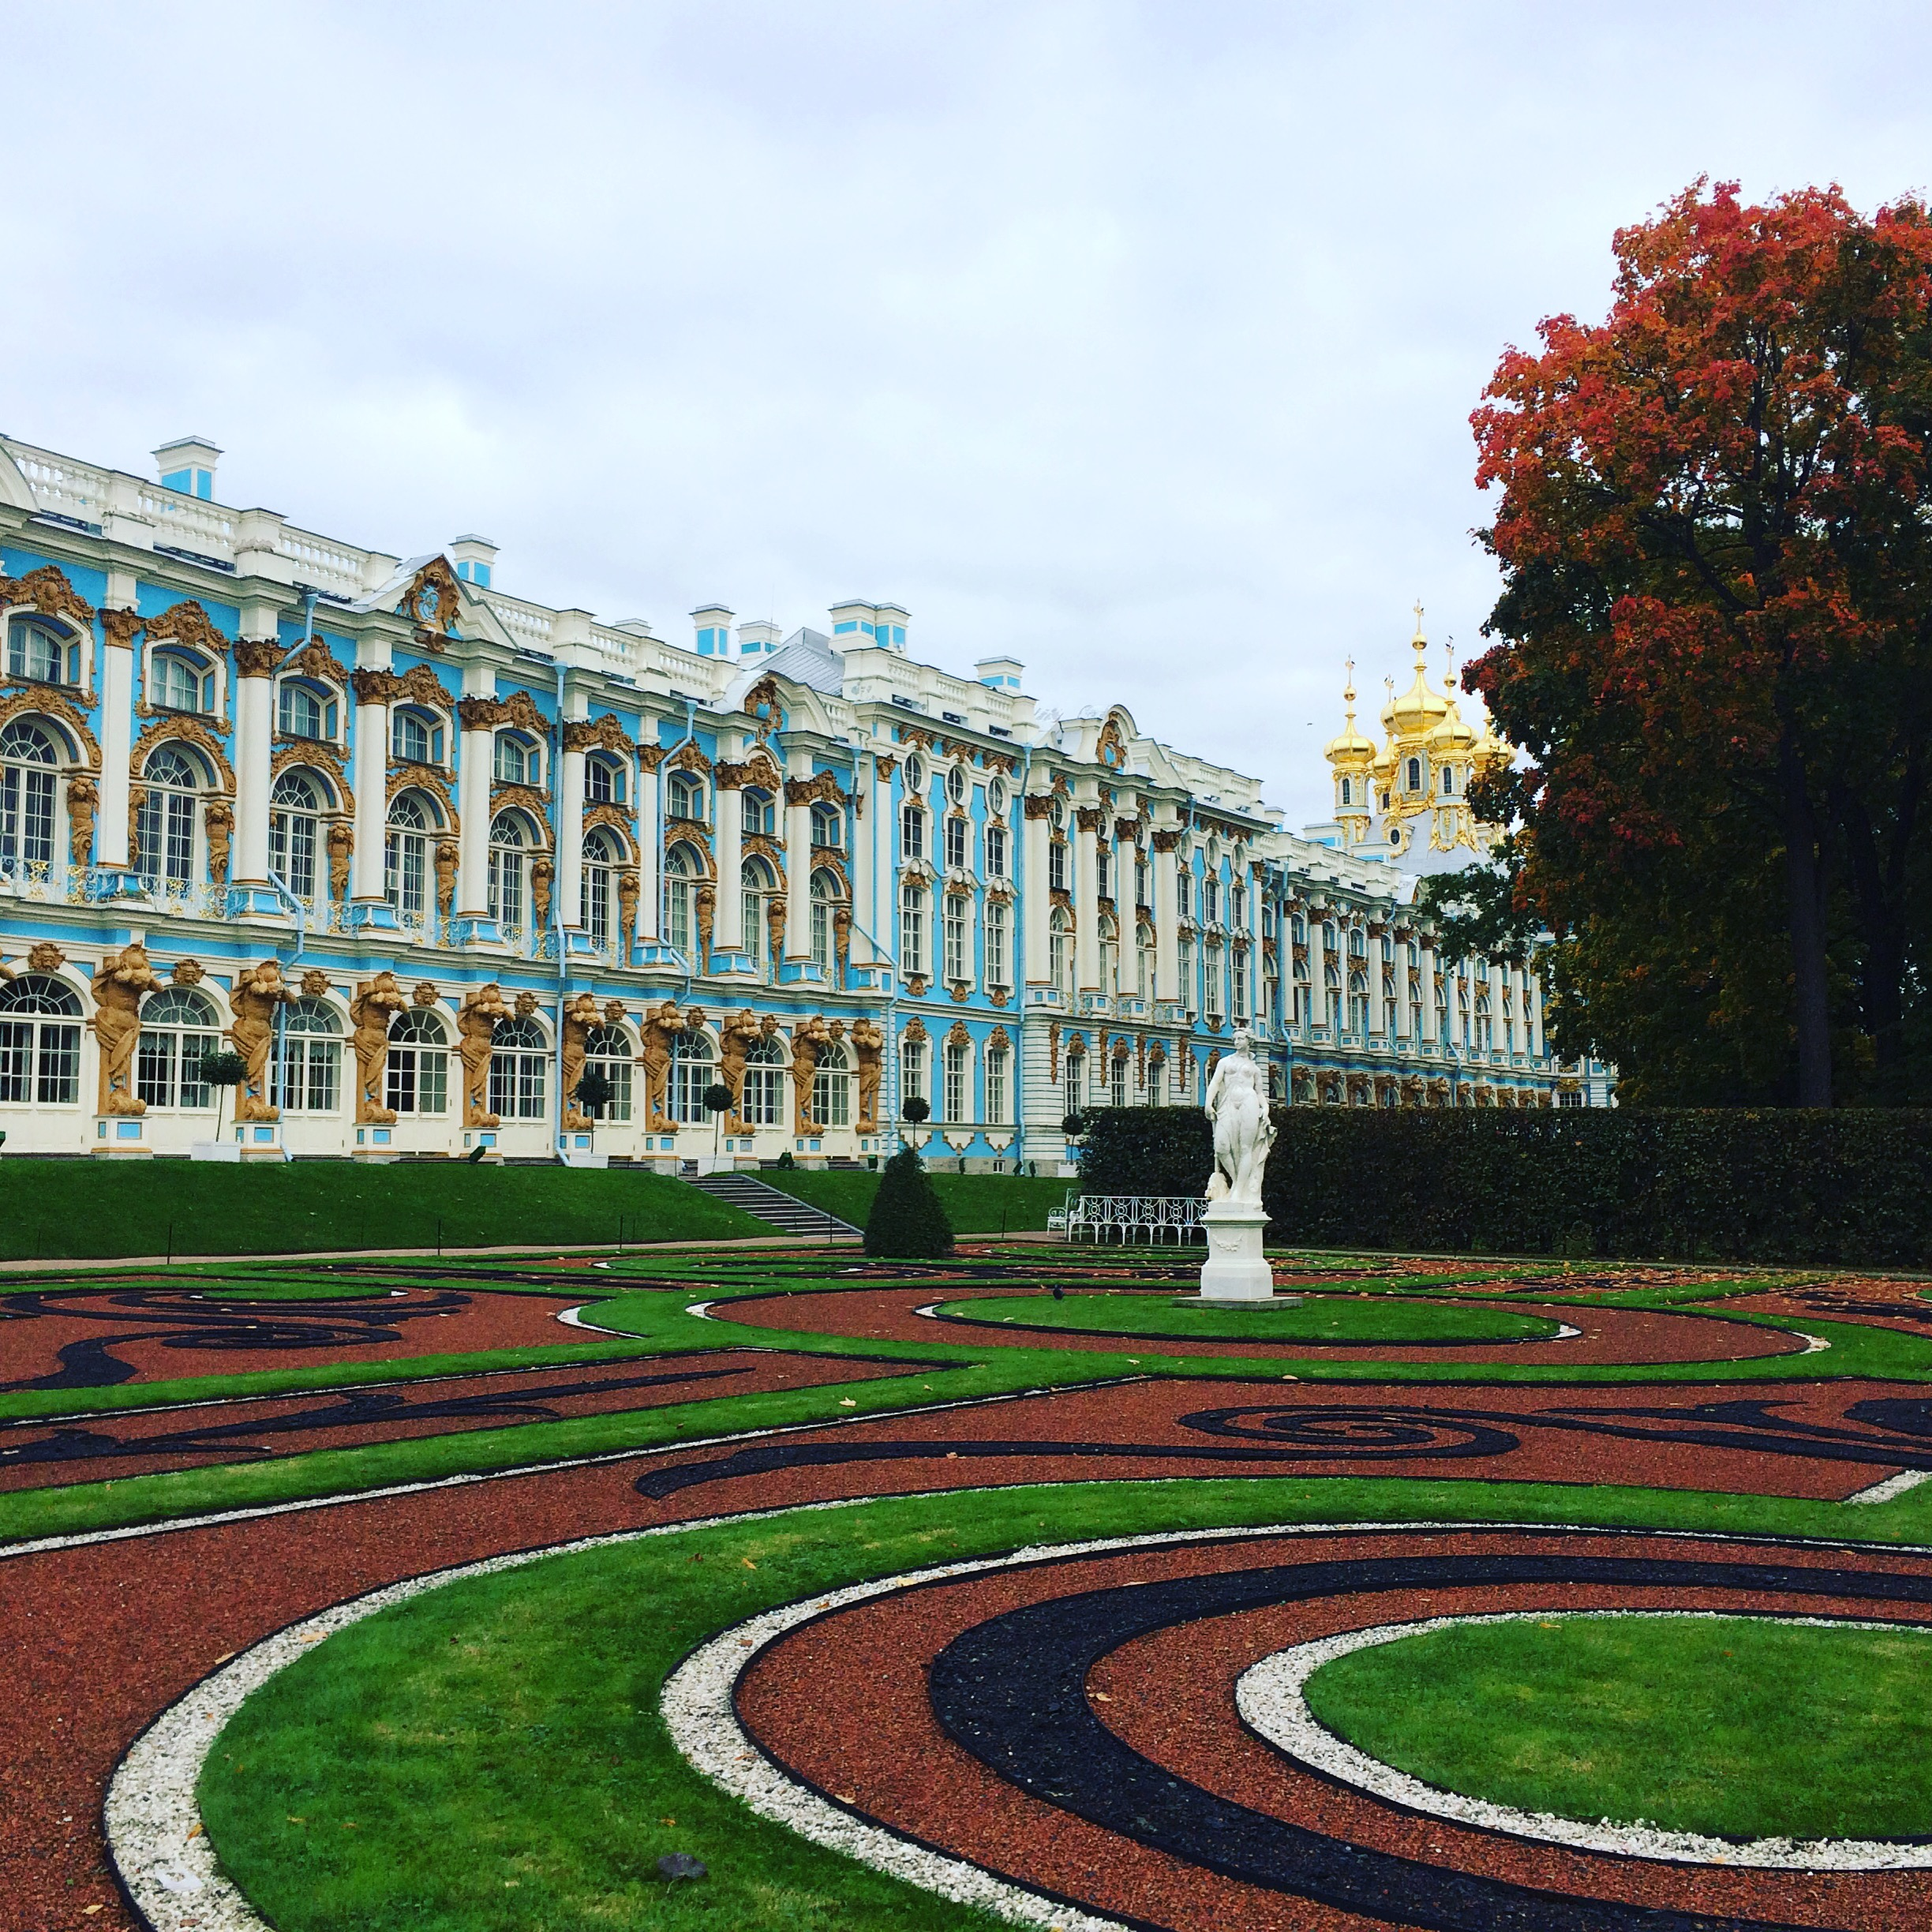 The Catherine Palace at Tsarskoye Selo (Pushkin), taken September 2016 by Jennifer Dasal